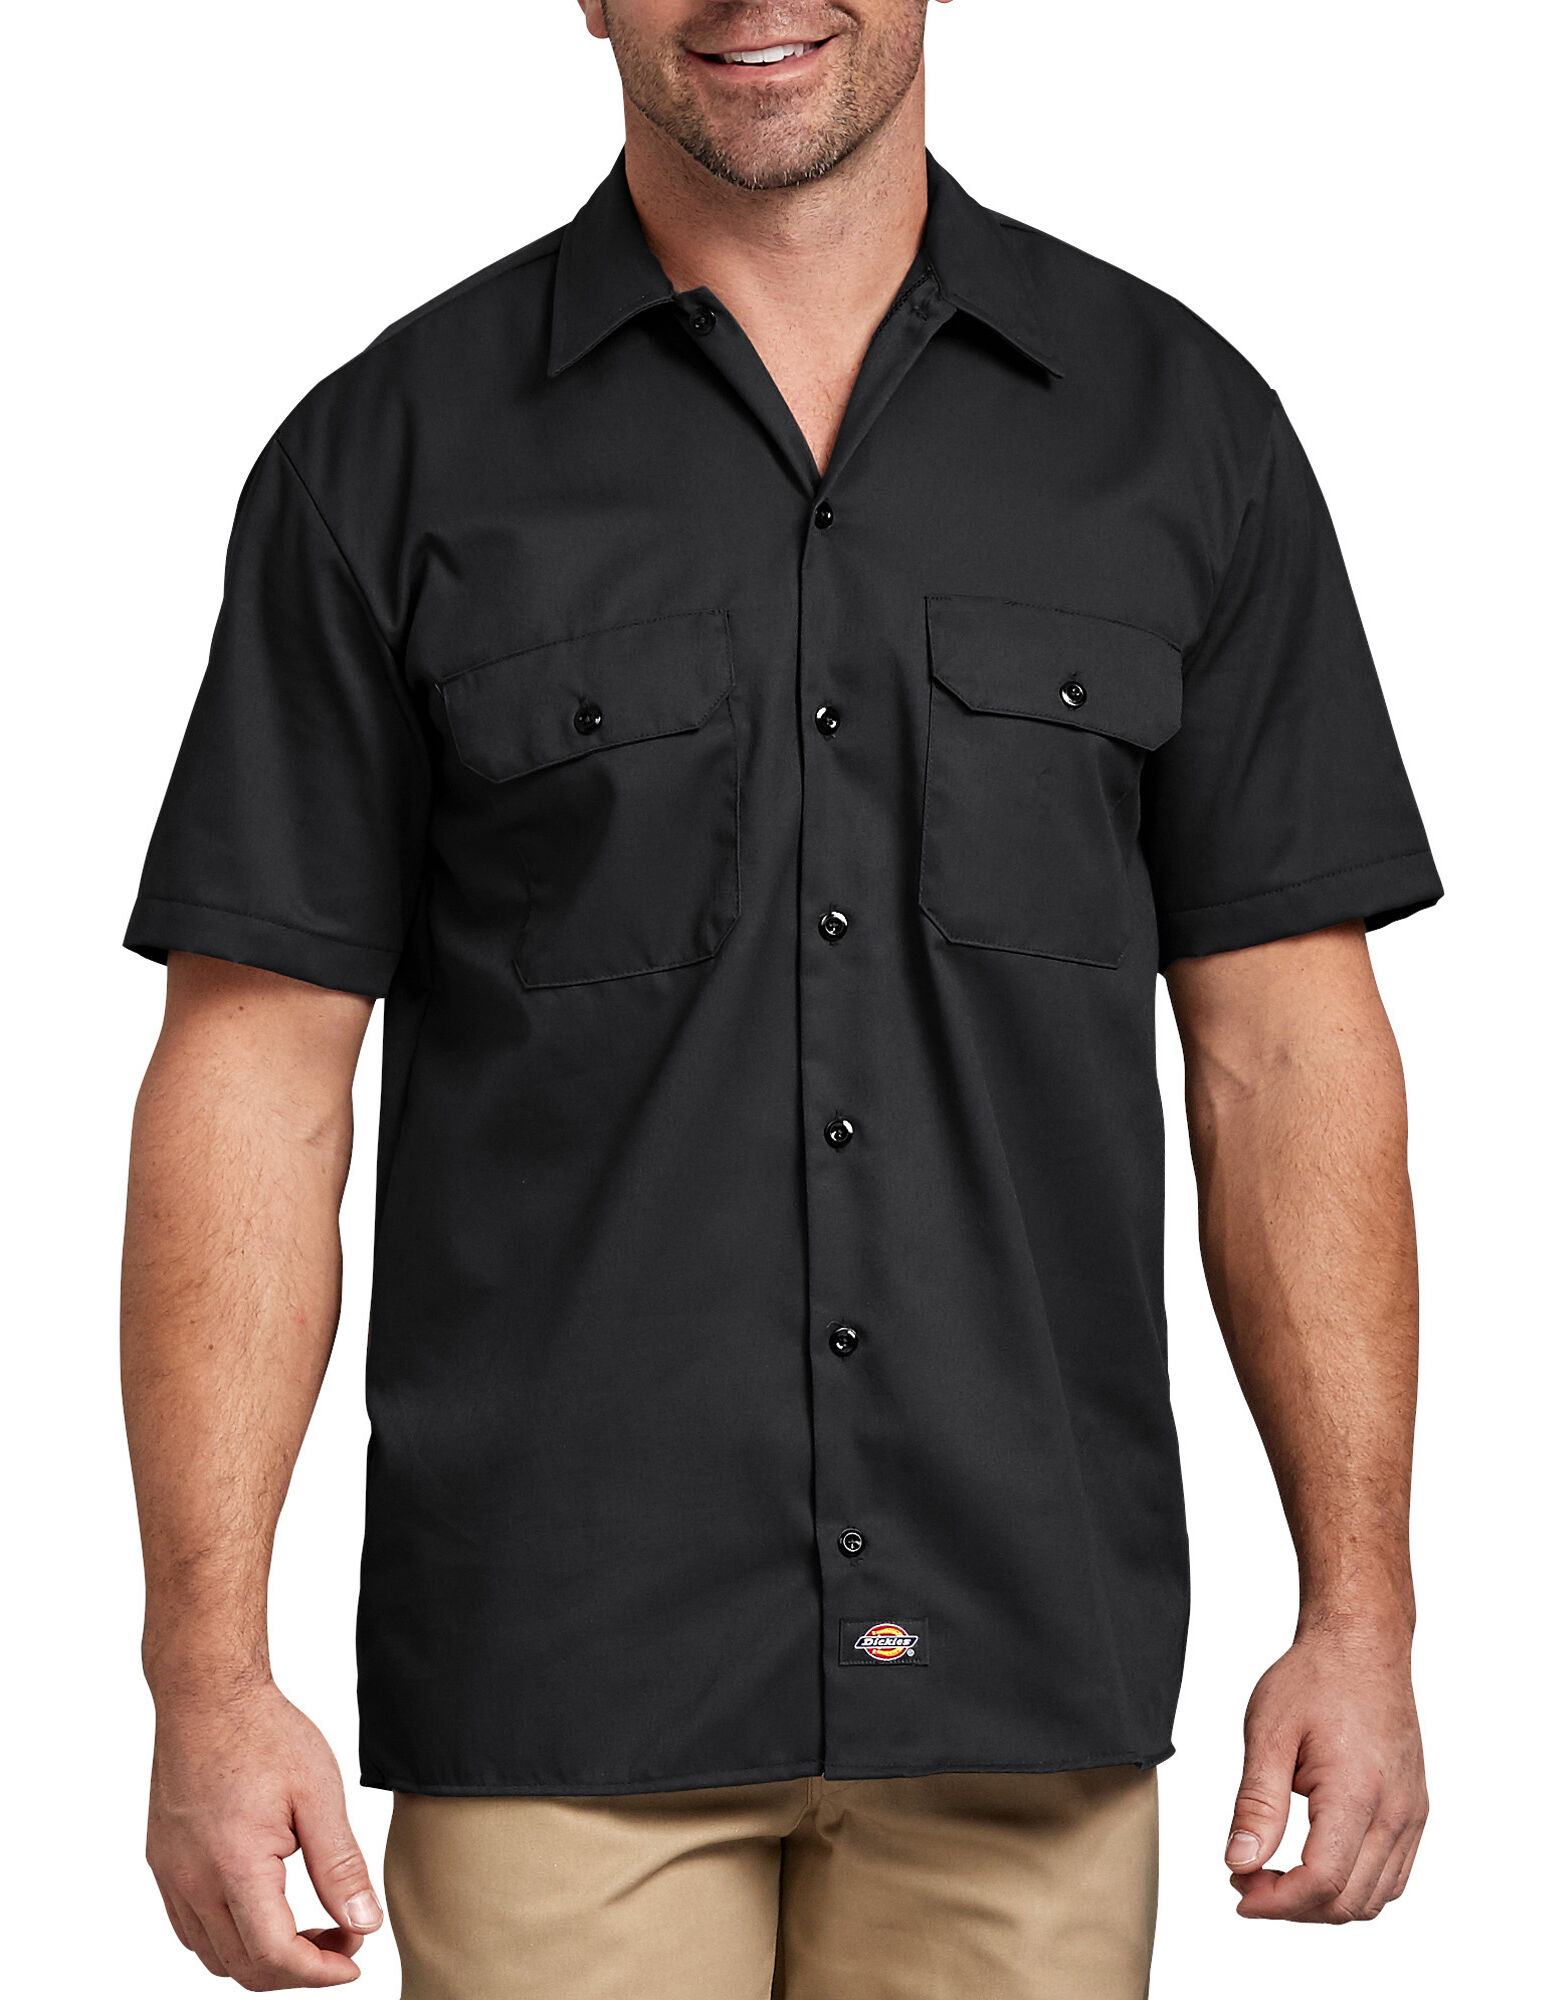 Let's talk about colored versus uncolored black shirts. Either way, it's going to send very similar signals, but a color black shirt is always going to be less formal than a white or a light colored dress shirt.